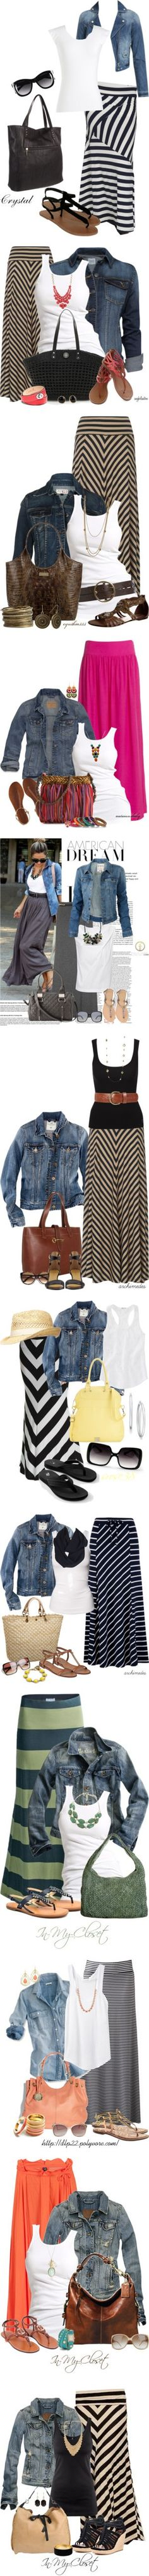 """Denim and Maxis"" by esha2001 on Polyvore"